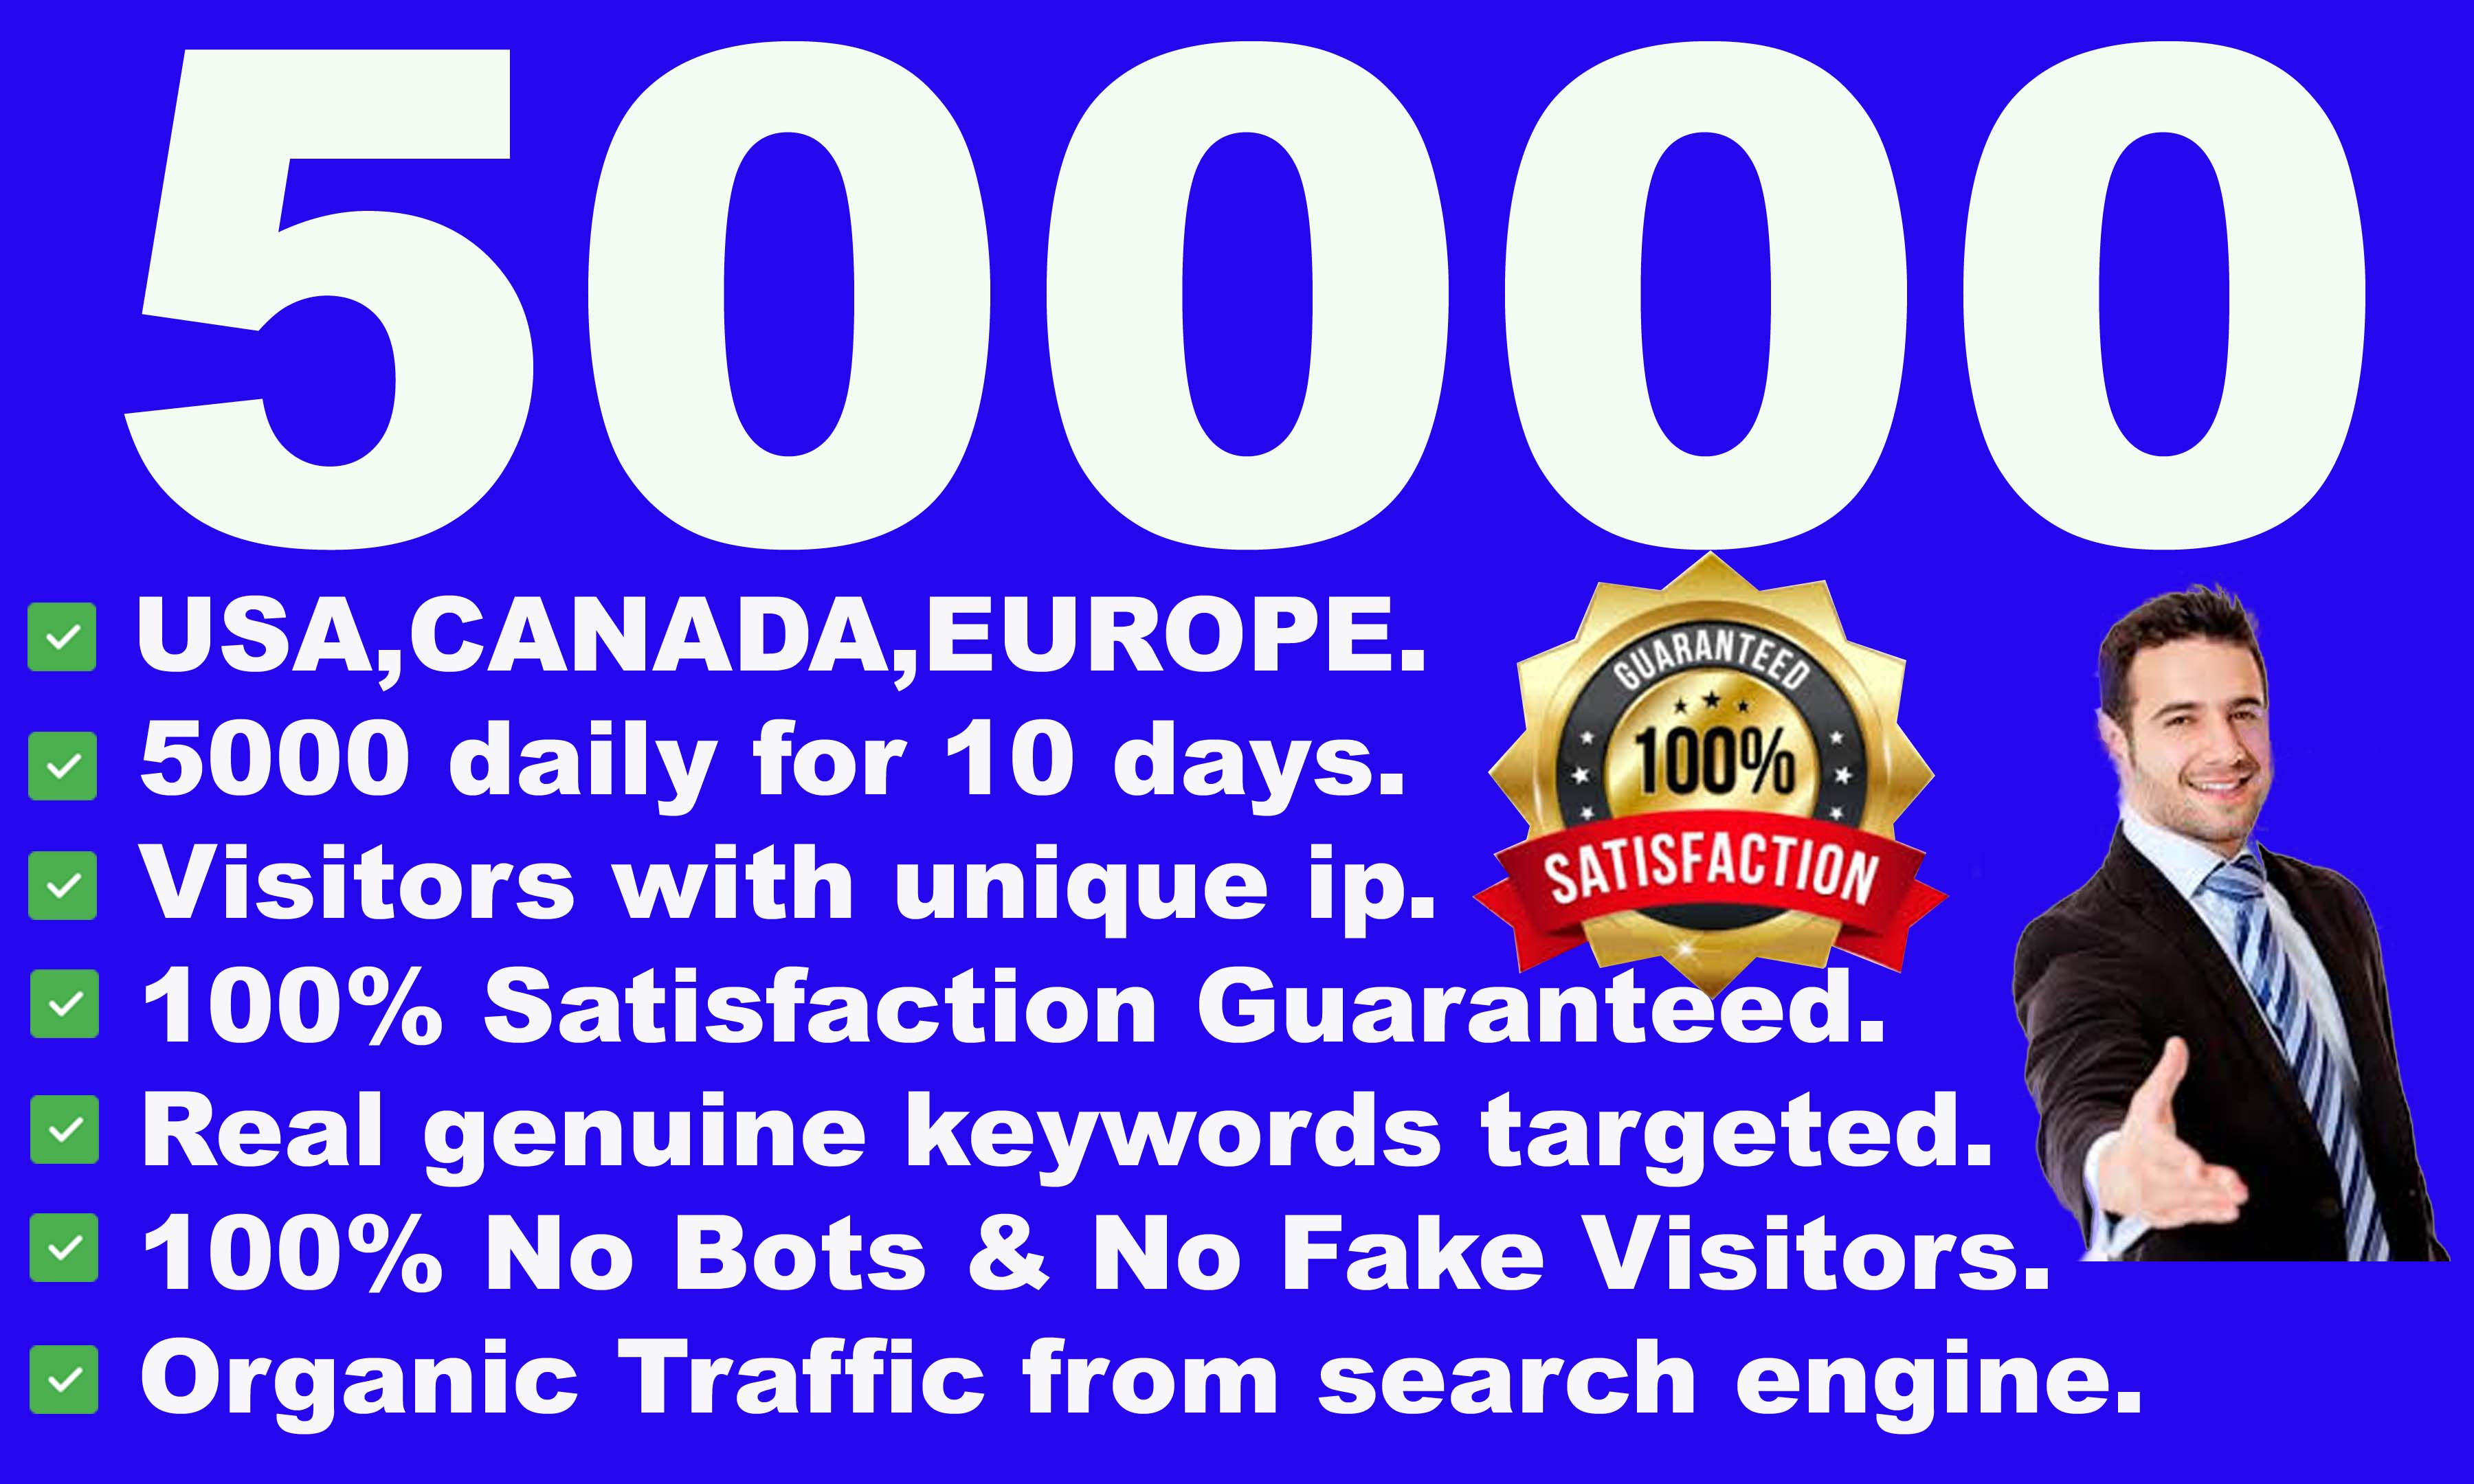 I will drive 50000 high quality visitors from USA, CANADA, EUROPE